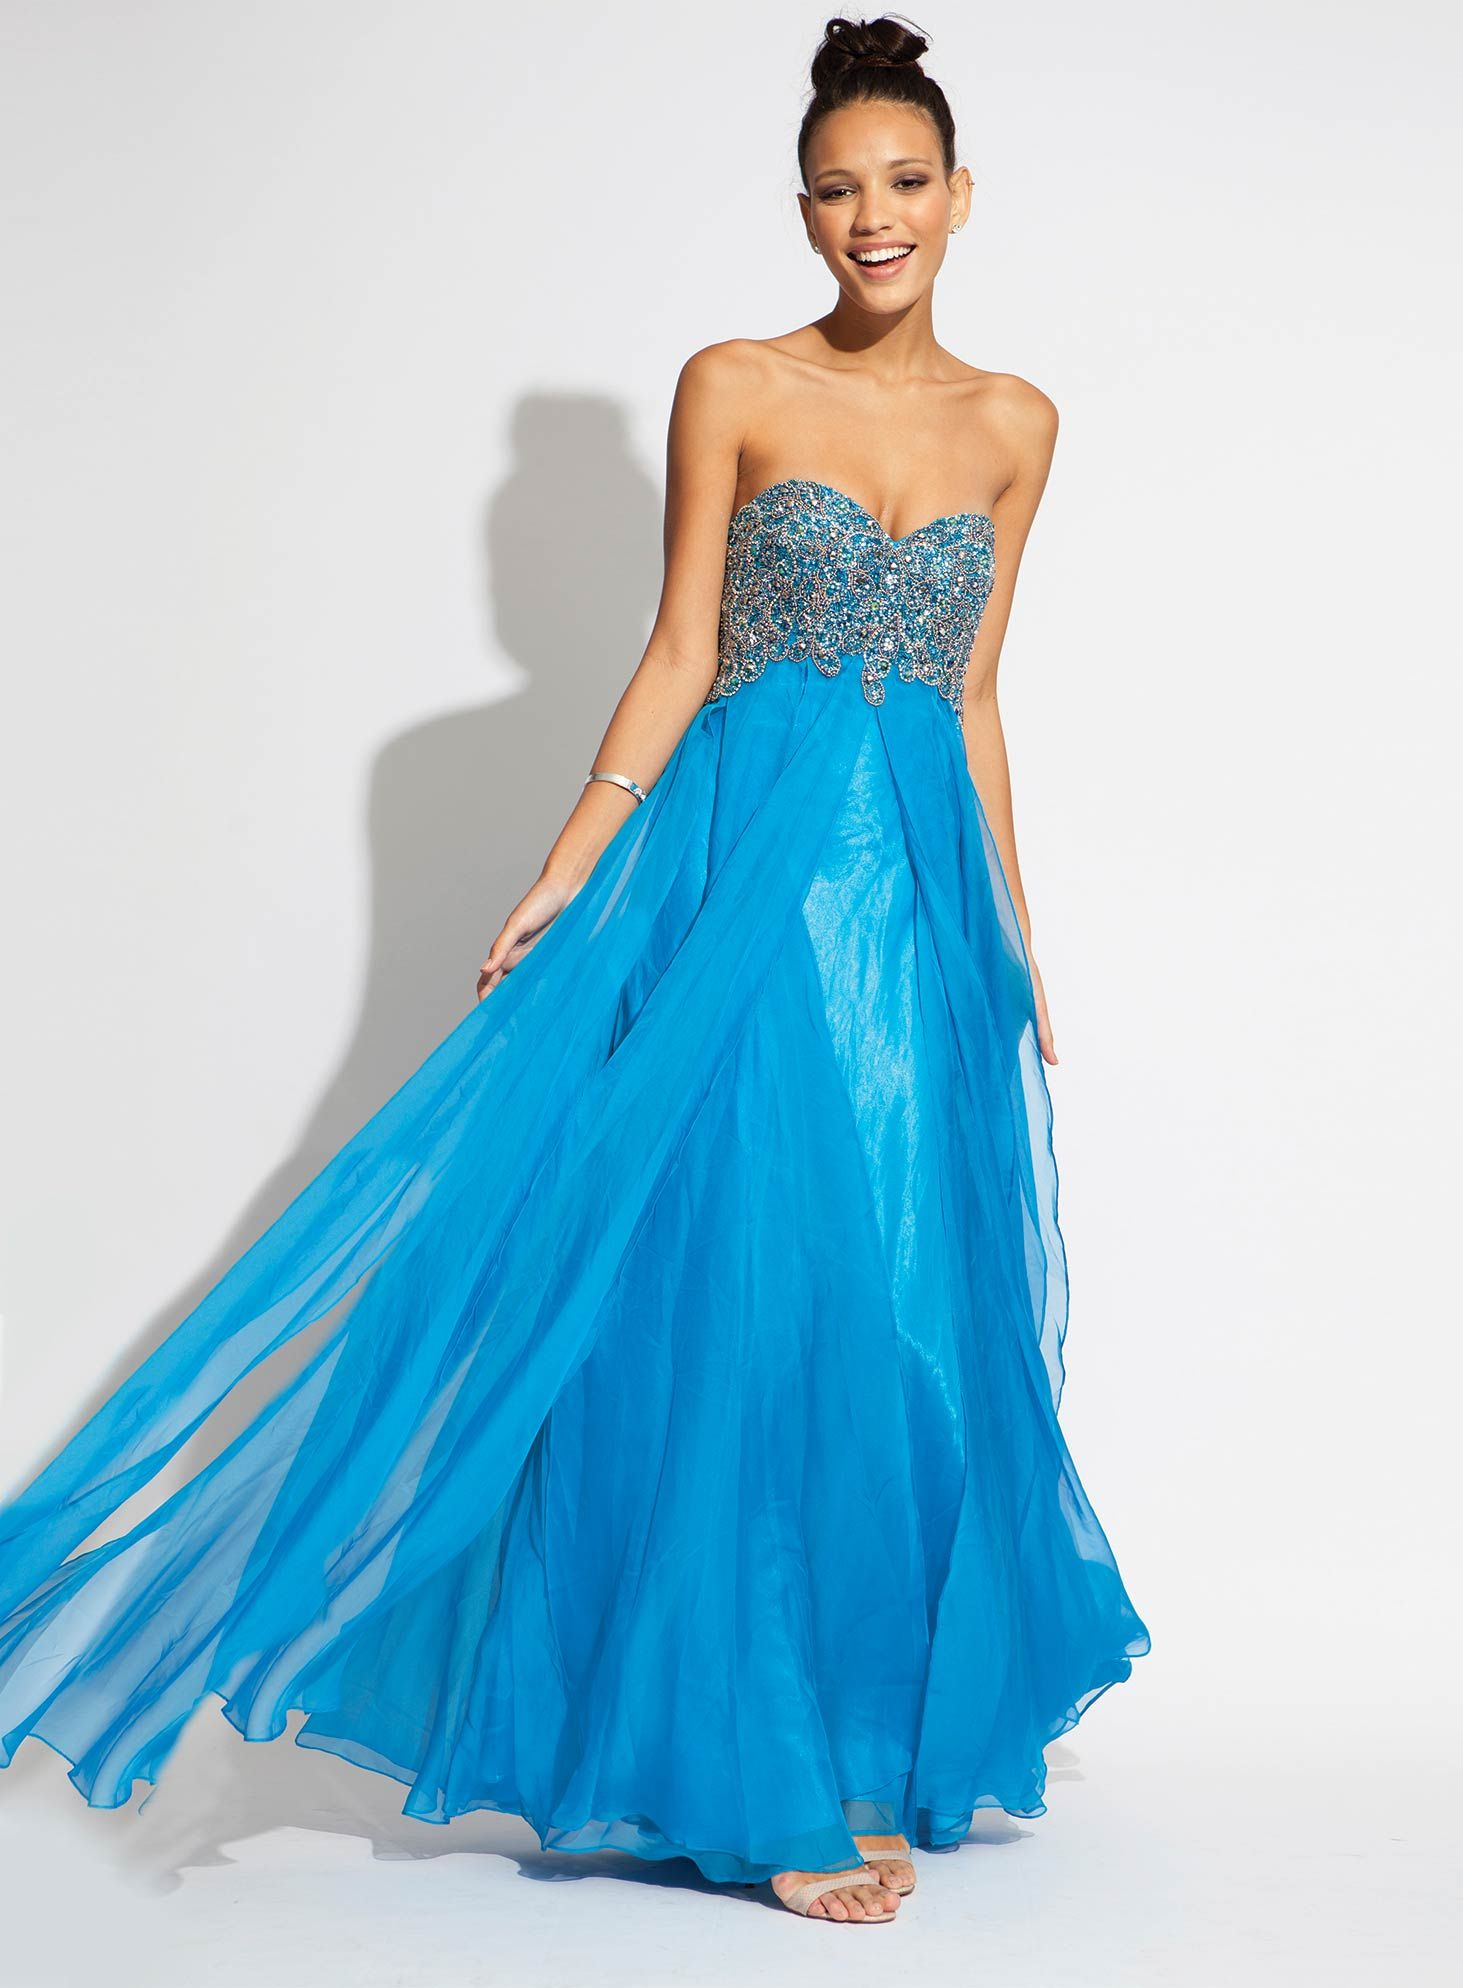 Long Jovani dress with a sweetheart neckline | Jovani Gowns ...